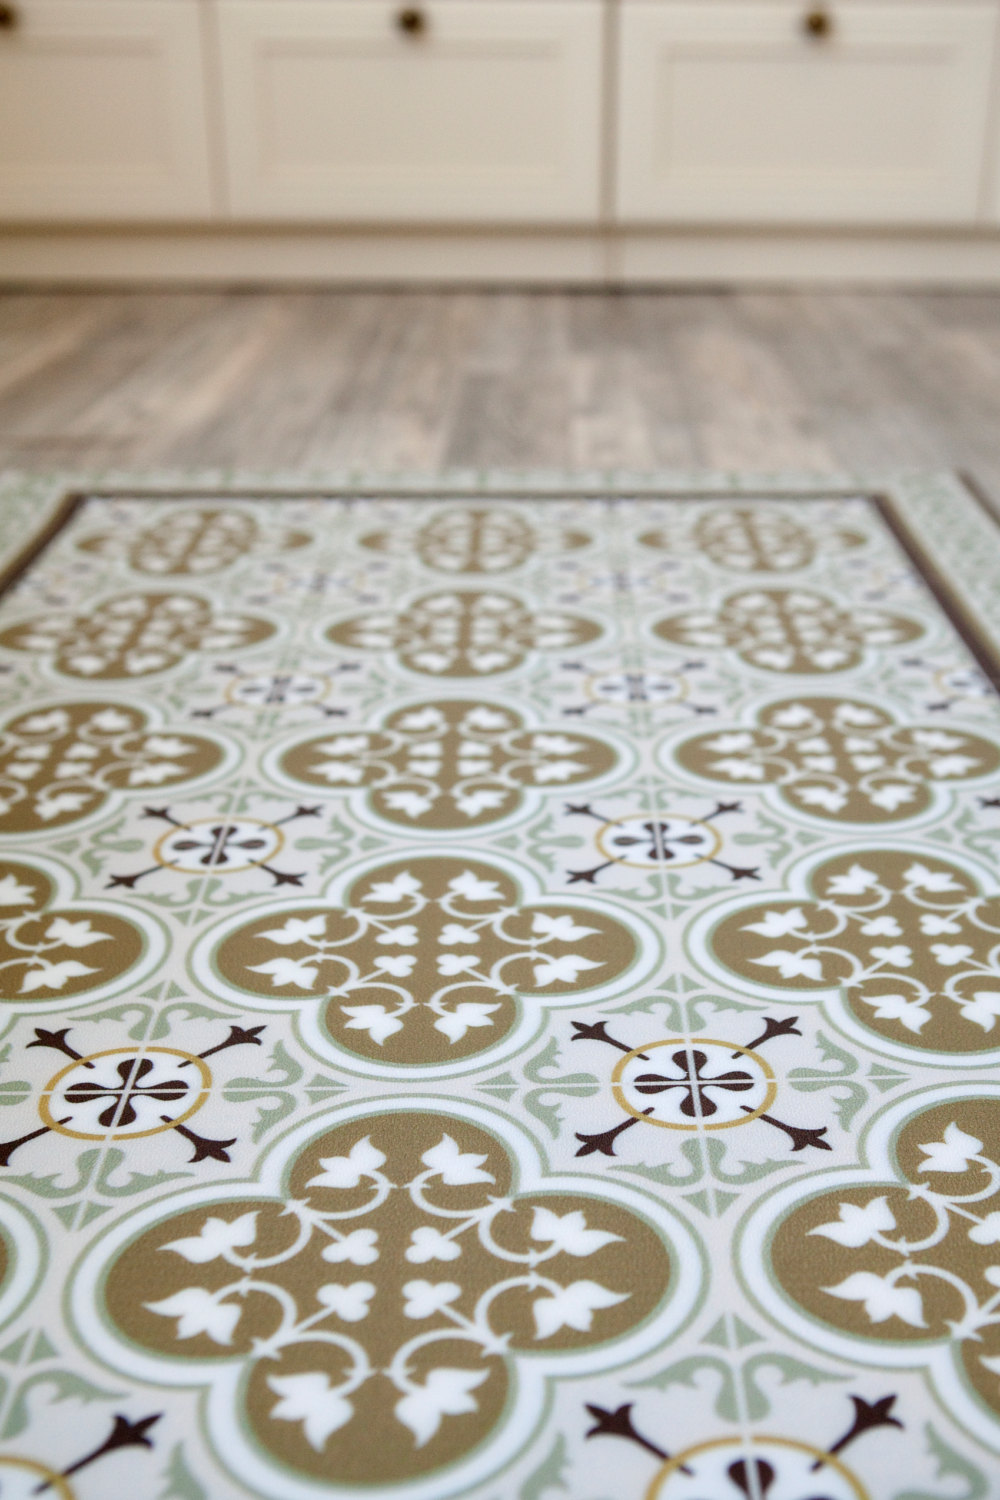 Linoleum rug rugs ideas for Patterned linoleum tiles